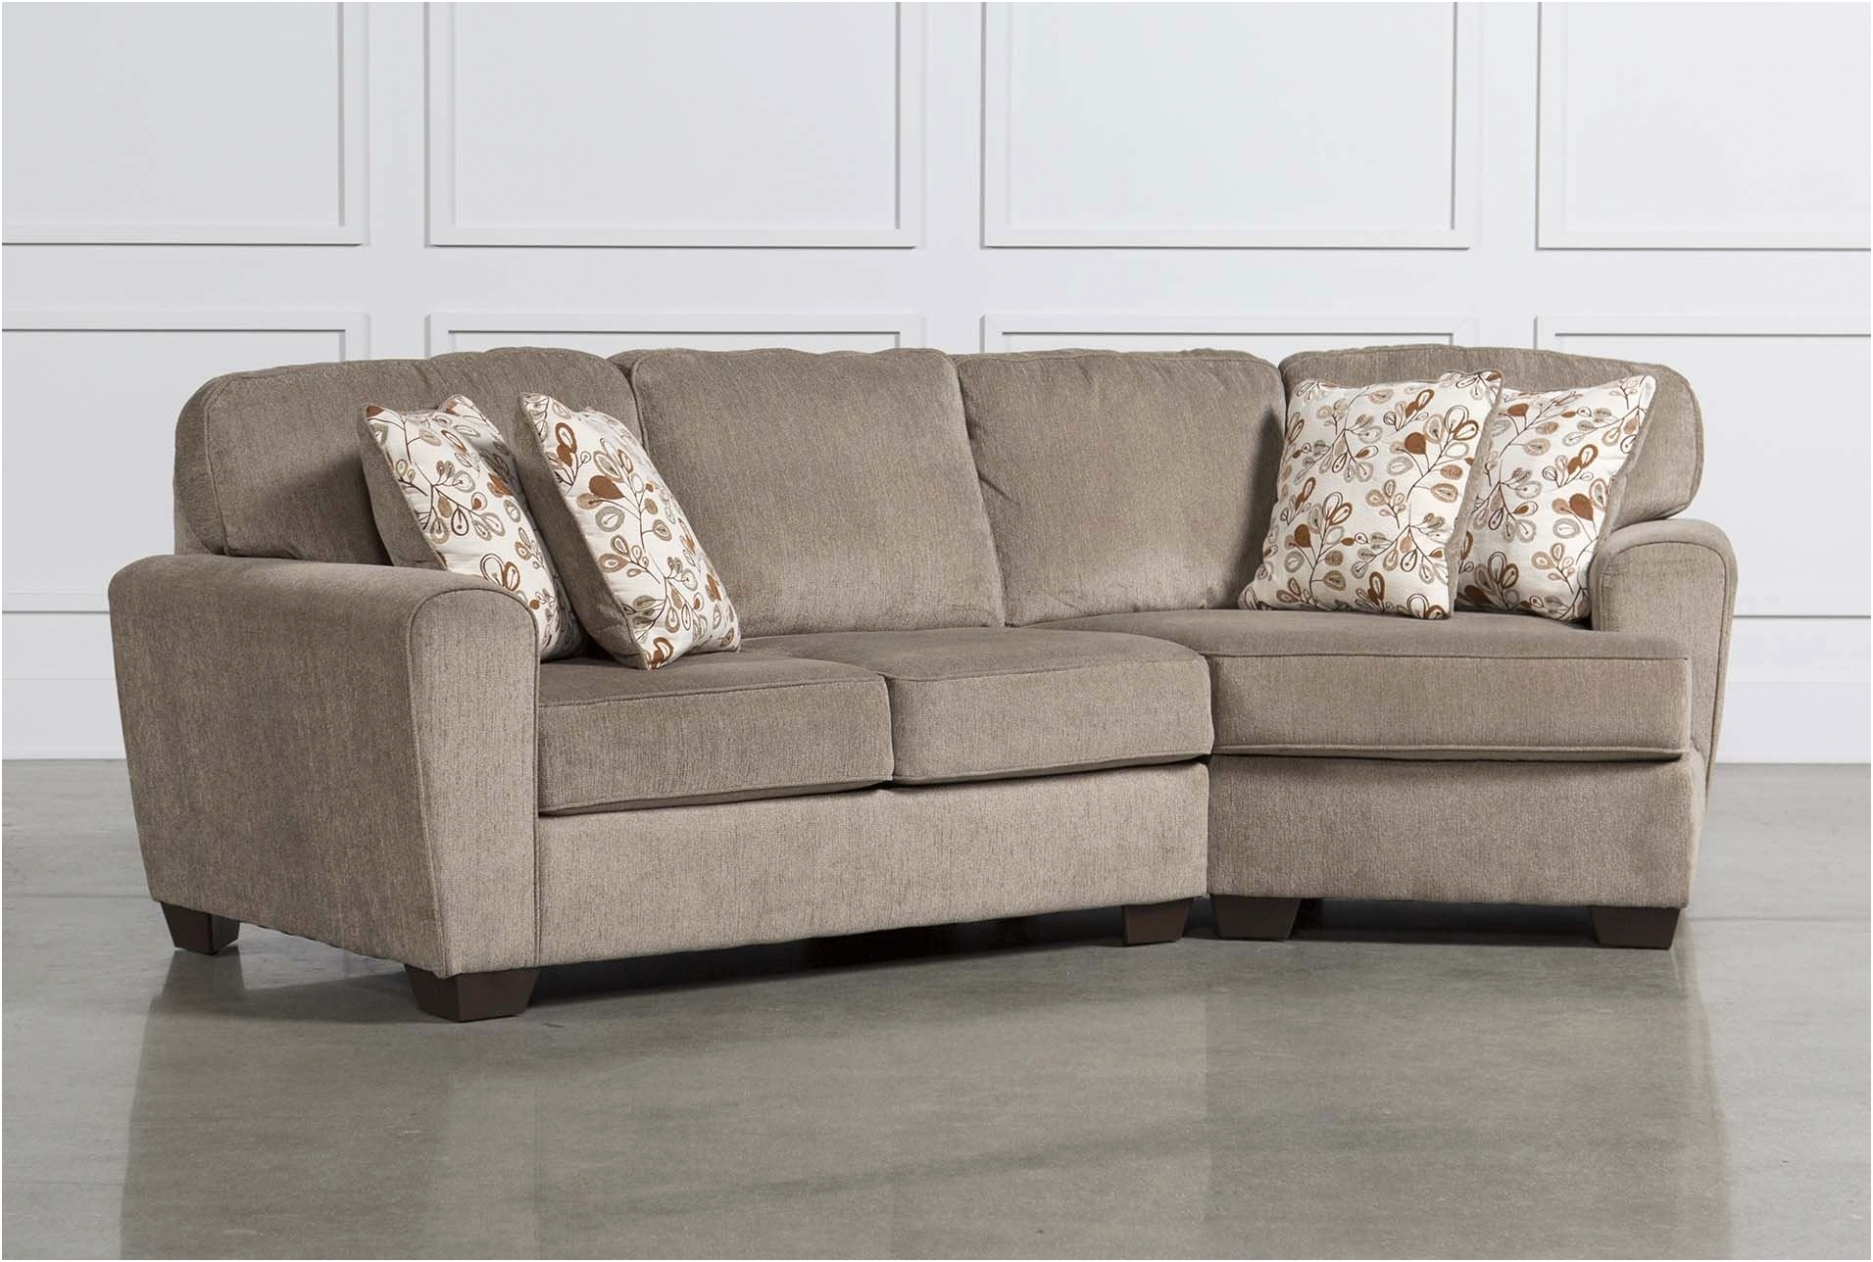 Latest Living Spaces Sectional Sofas Within Furniture: Fresh Sectional Sofa With Cuddler Chaise New – Sofa (View 6 of 15)